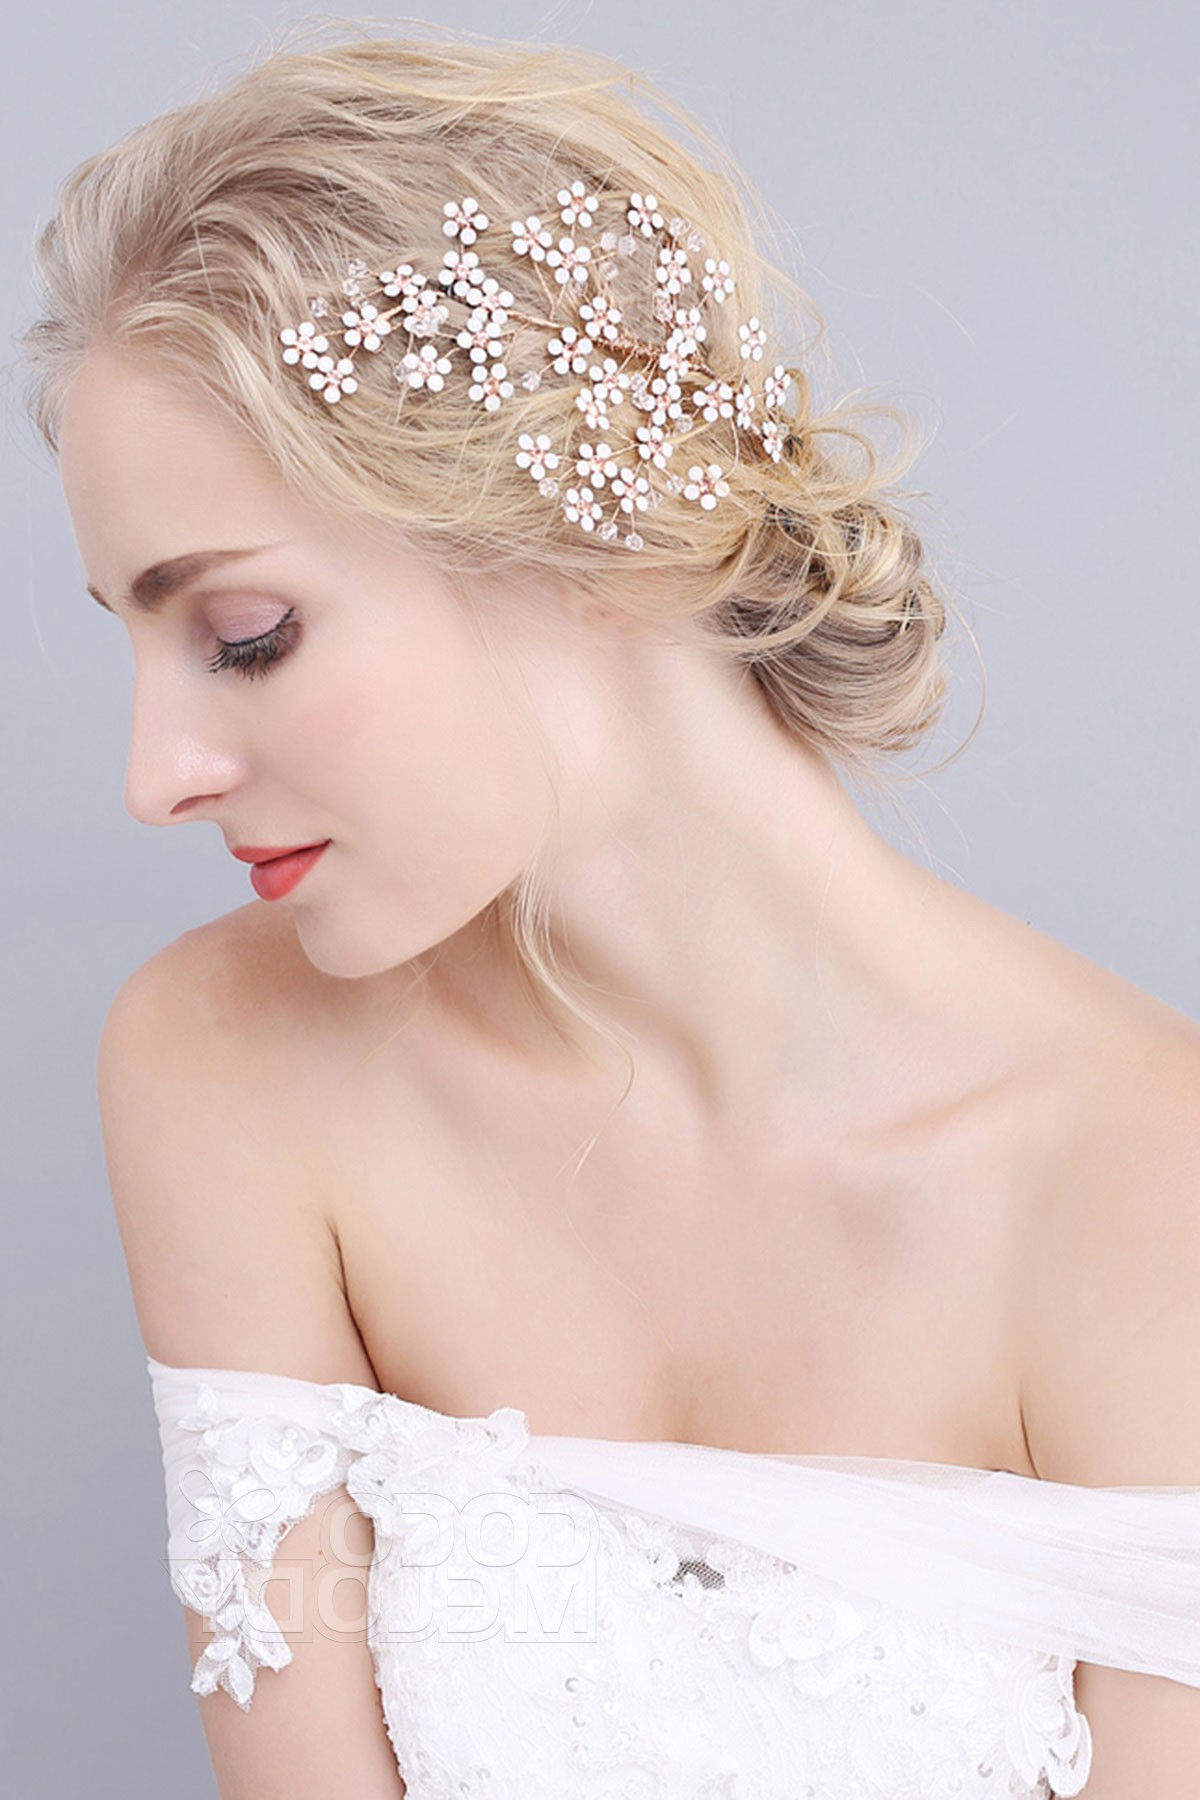 Most Current Bedazzled Chic Hairstyles For Wedding Intended For Alloy Wedding Hair Combs With Rhinestone Crystal Sah (View 9 of 20)